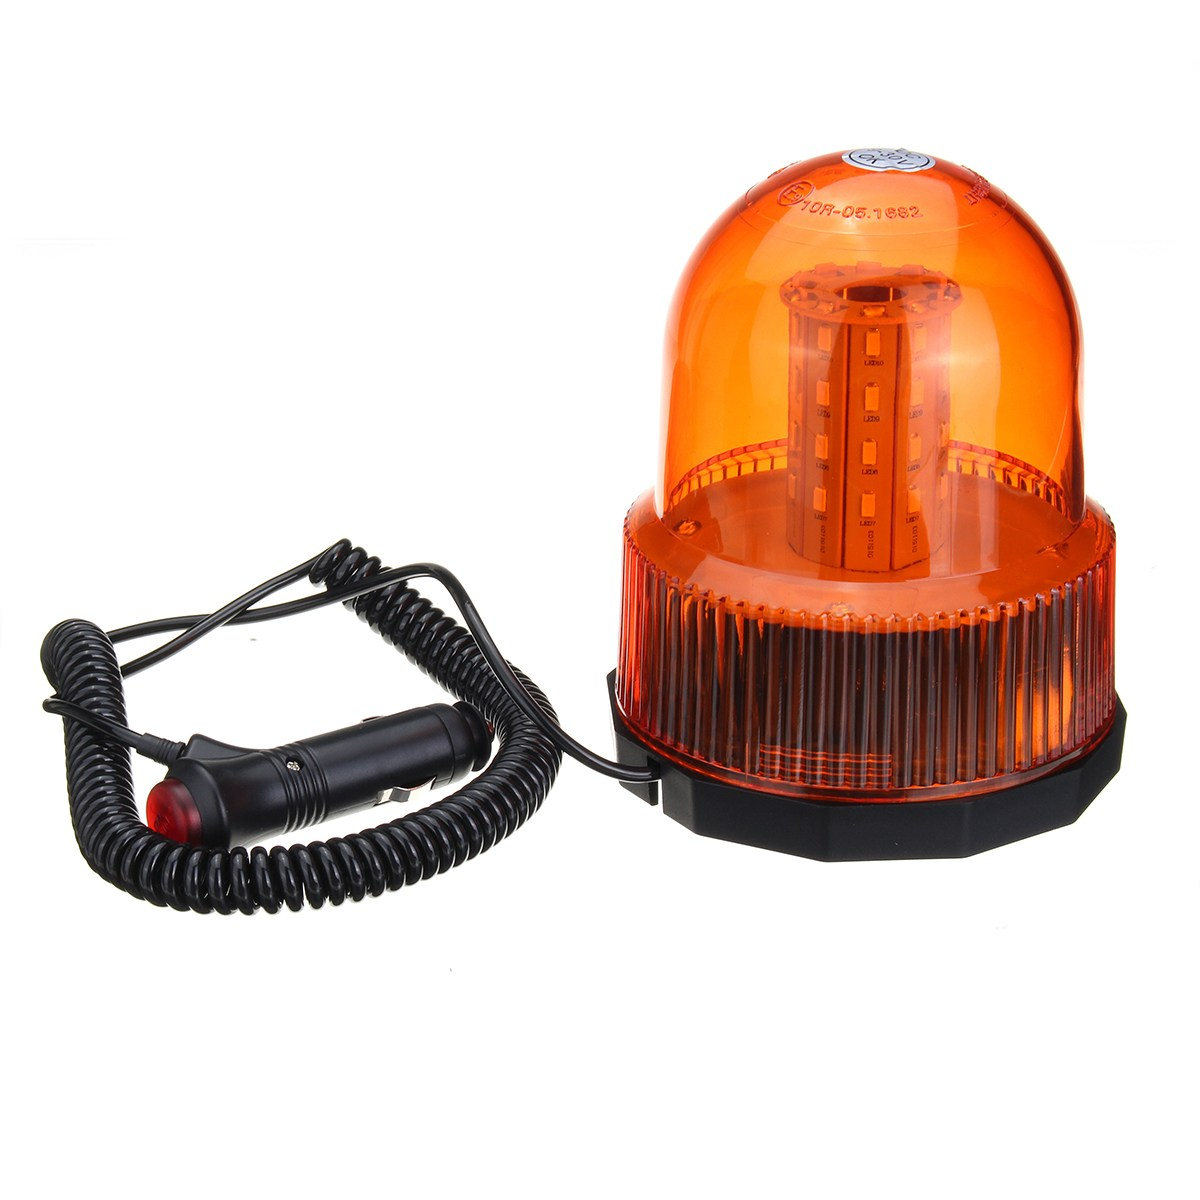 NEW 40 LED Magnetic Mount Rotating Flashing Amber Dome Beacon Recovery Warning Light Roadway Safety 10 led led beacon magnetic bolt recovery flashing warning strobe light lightbar amber